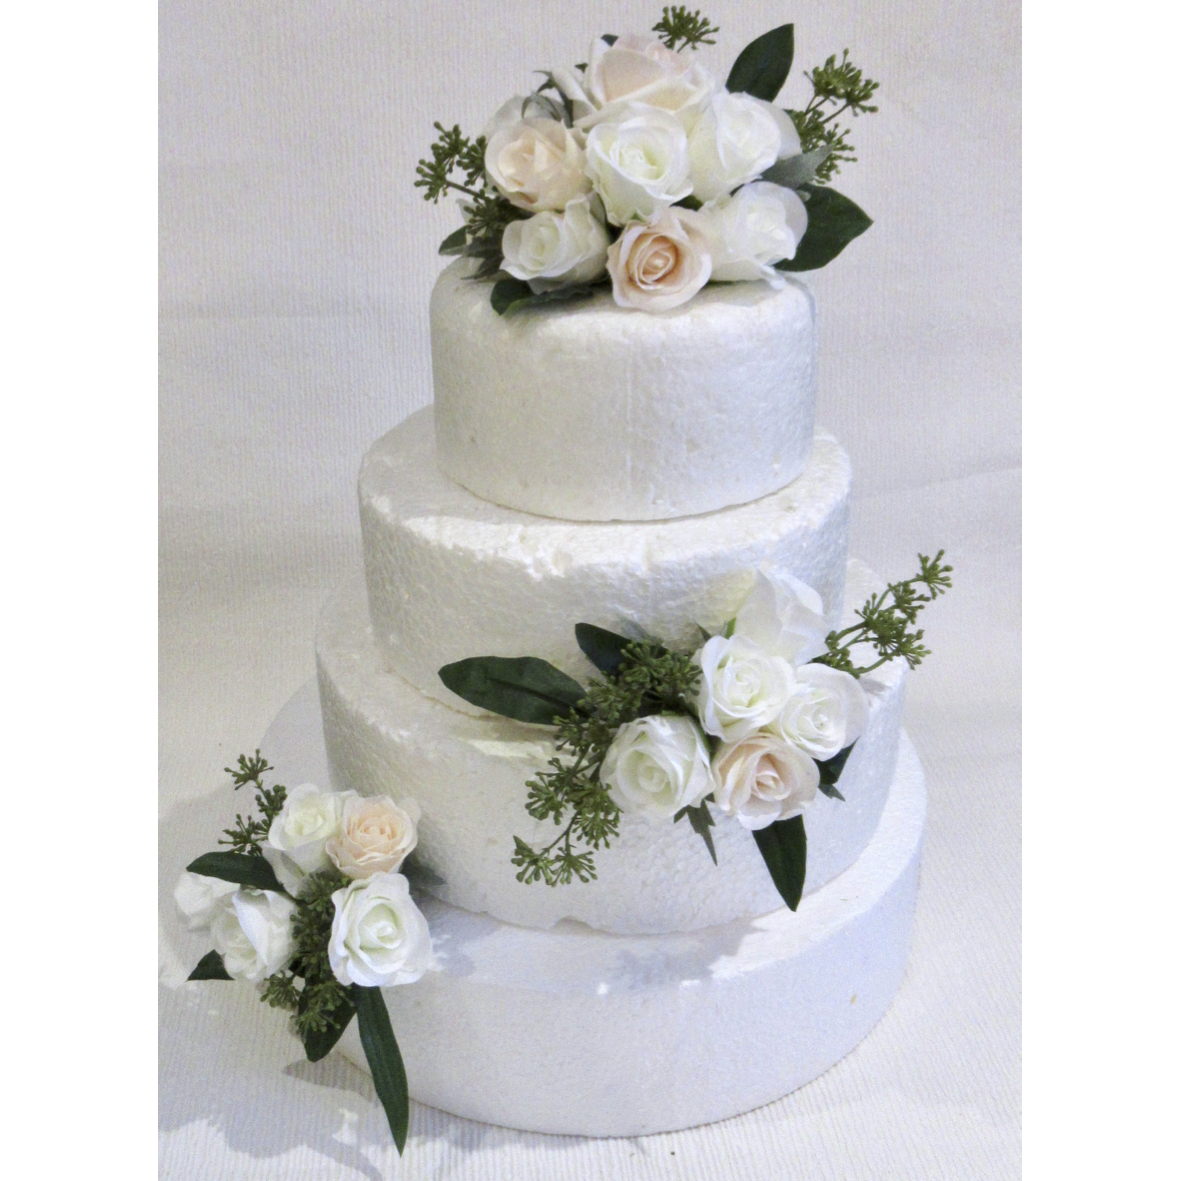 Blush and Ivory Cake Flowers for weddings